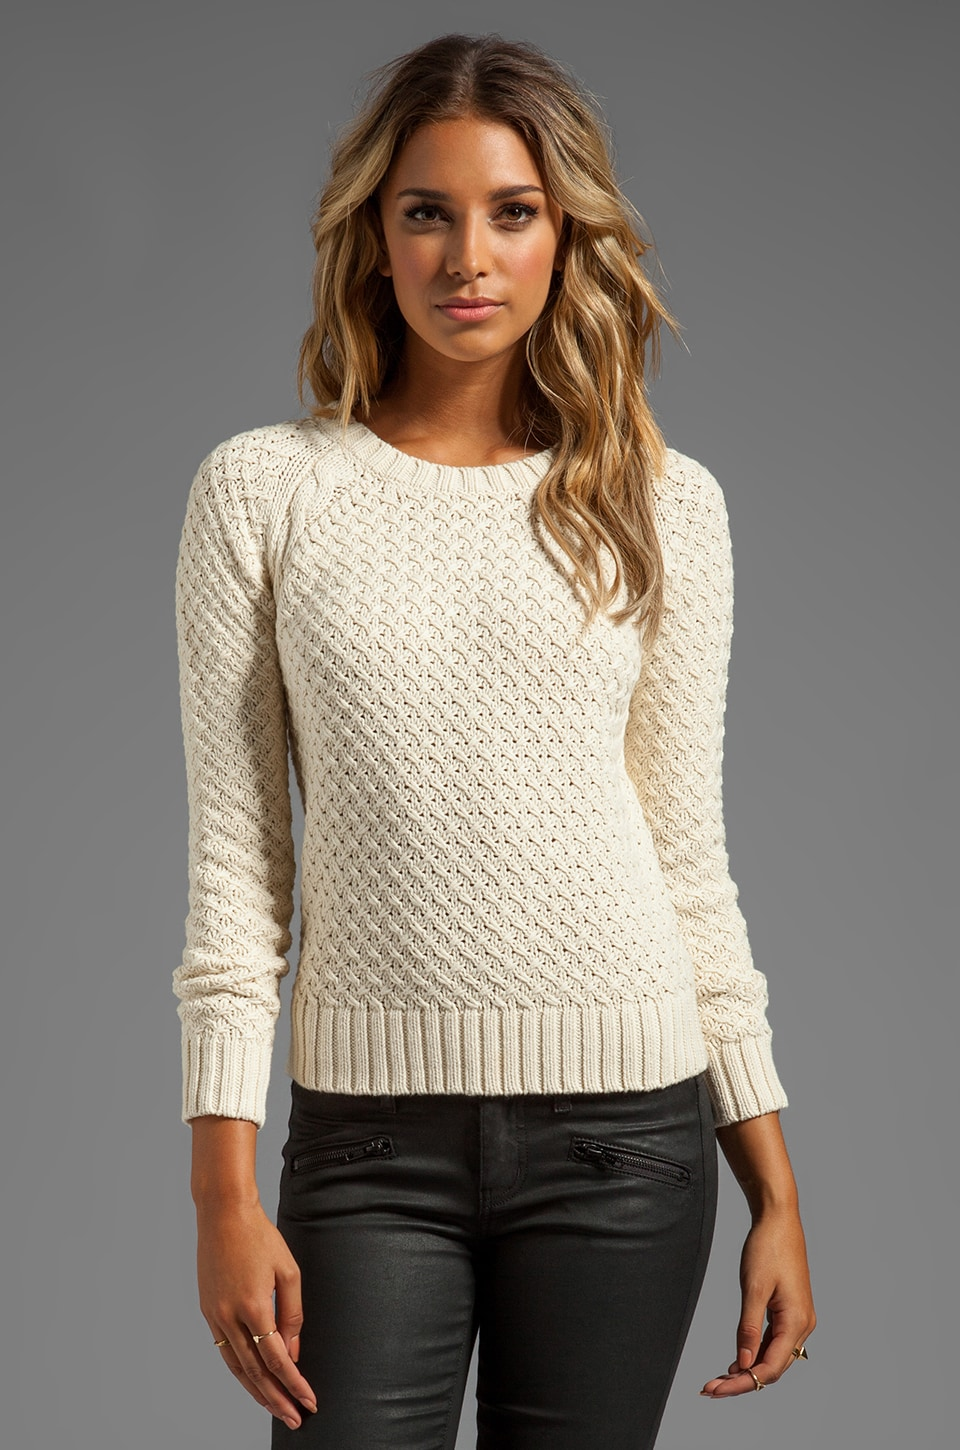 Alice by Temperley Keiko Knit Jumper in Cream